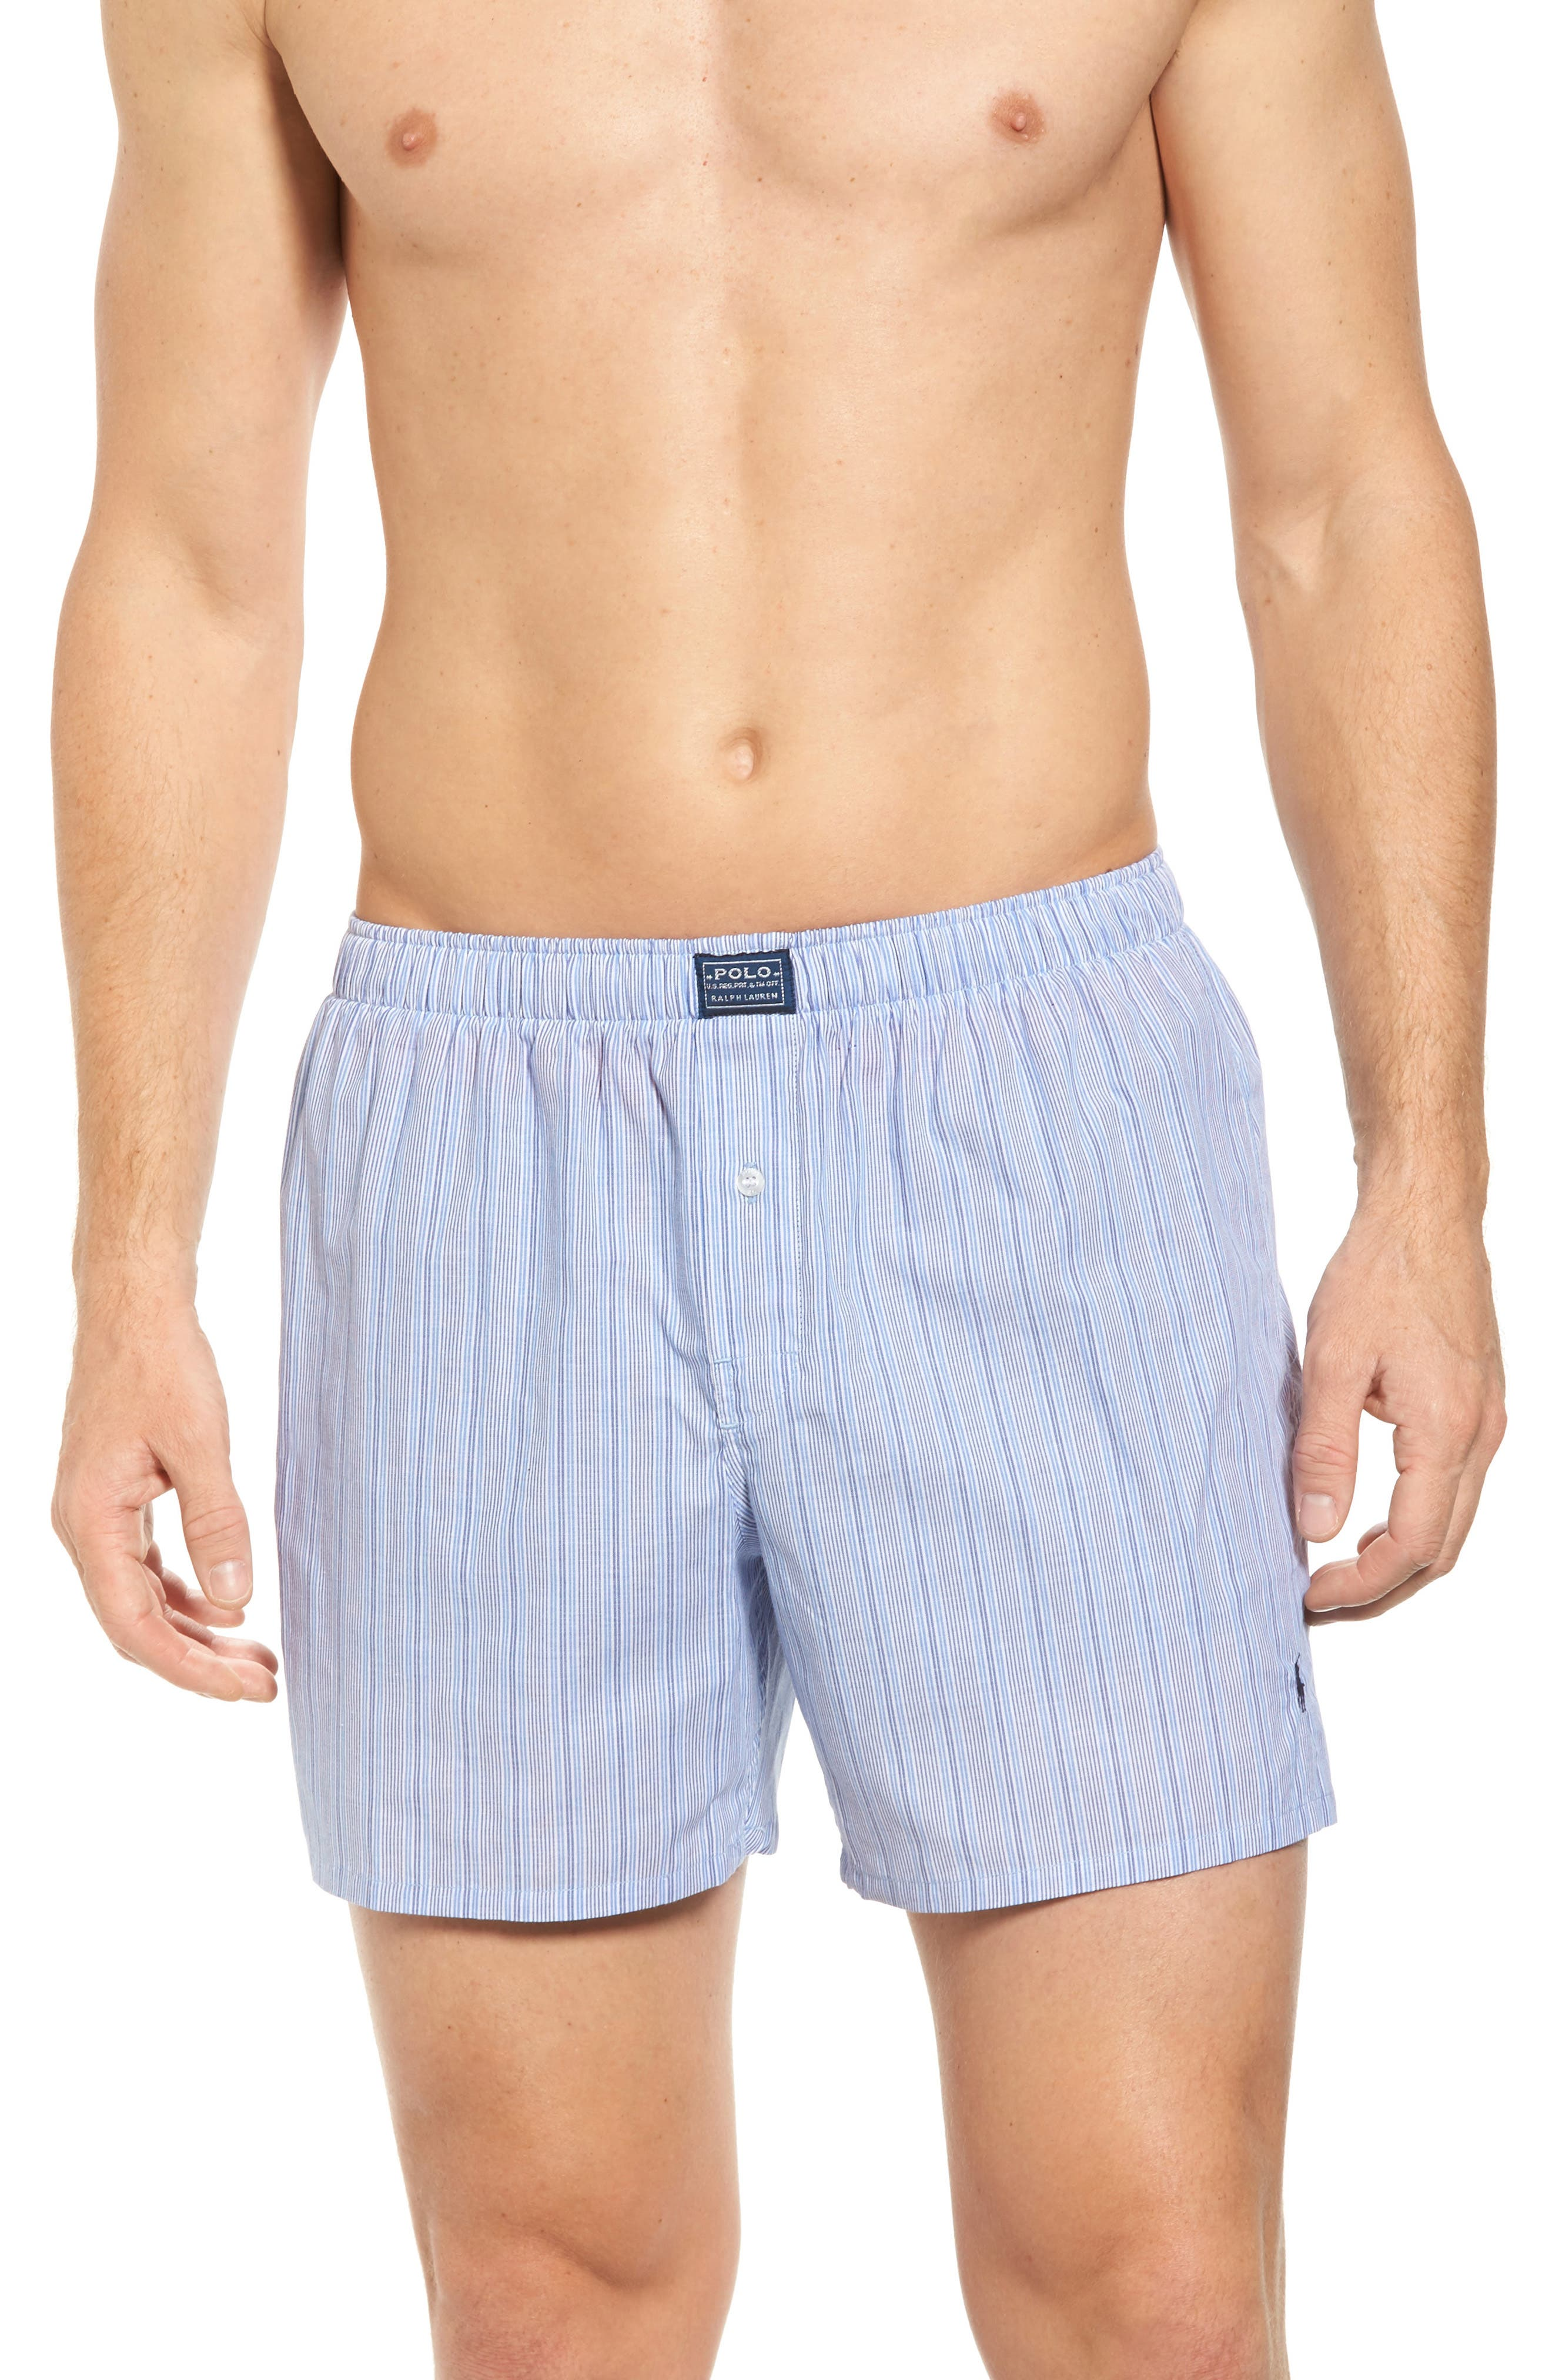 POLO RALPH LAUREN Woven Boxer Shorts, Main, color, ANDREW BLUE